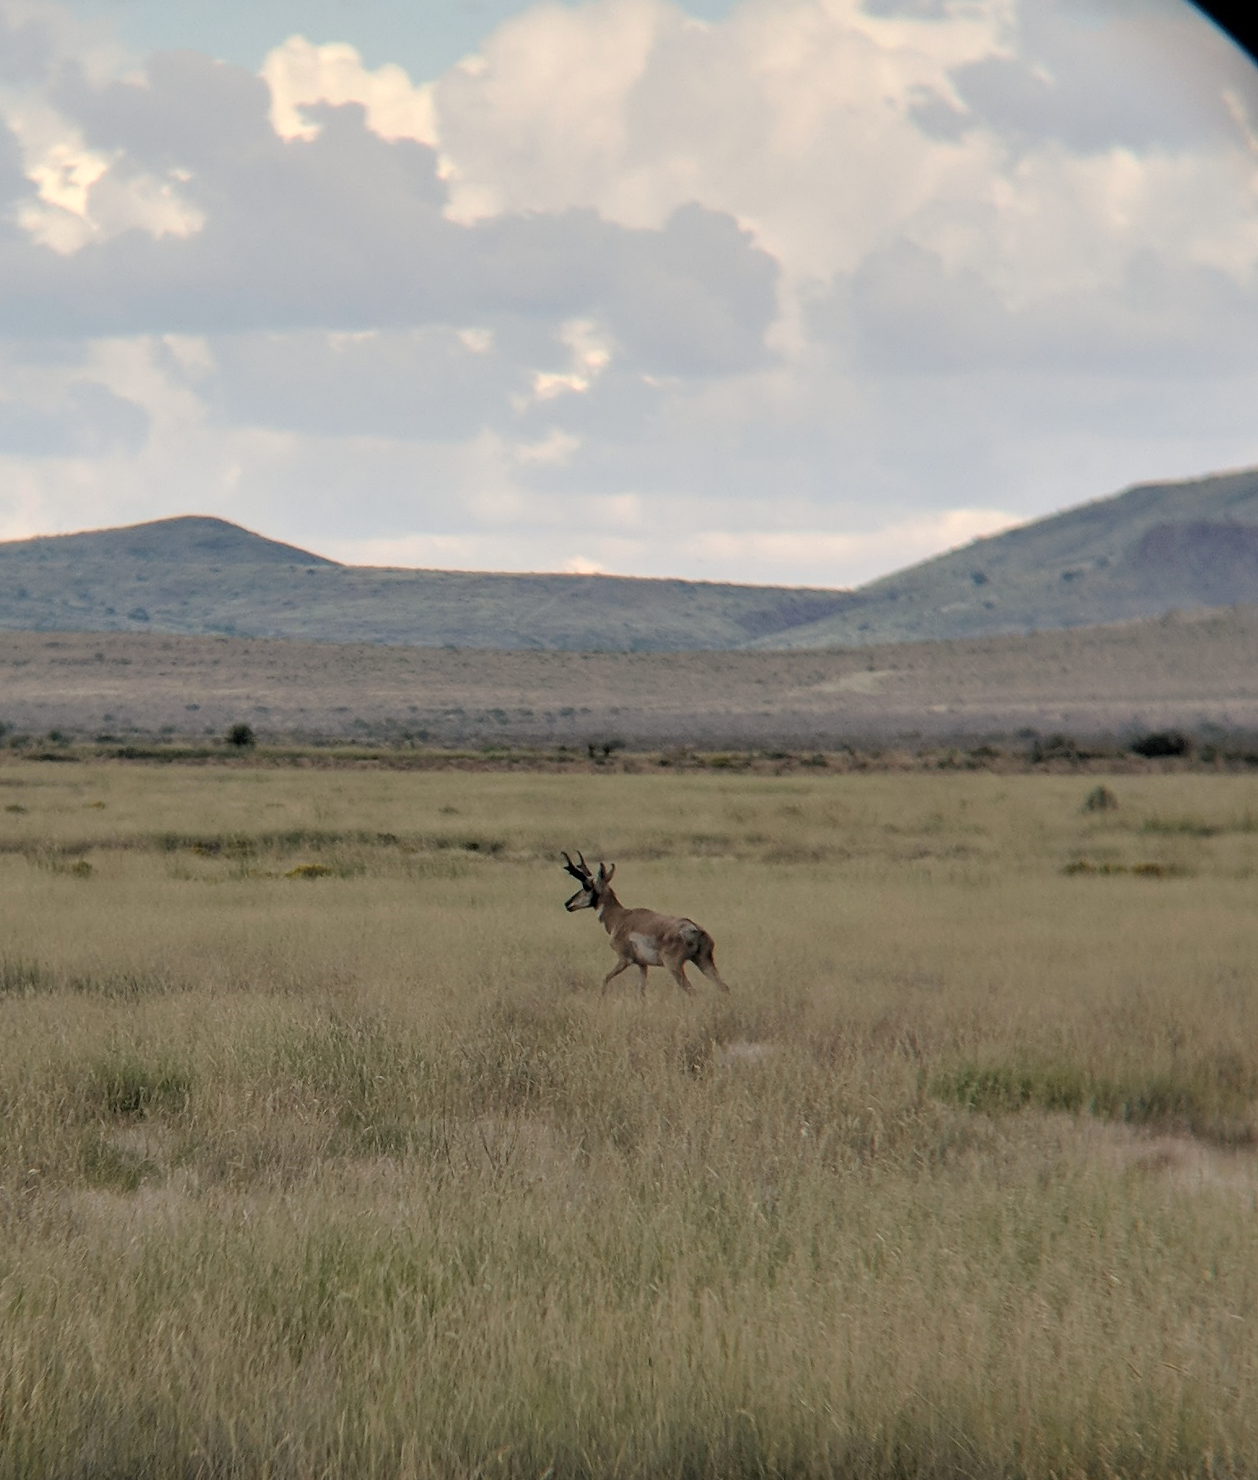 A Pronghorn runs through a field of tobosagrass as storm clouds gather on the horizon (photo by Christina Partipilo).